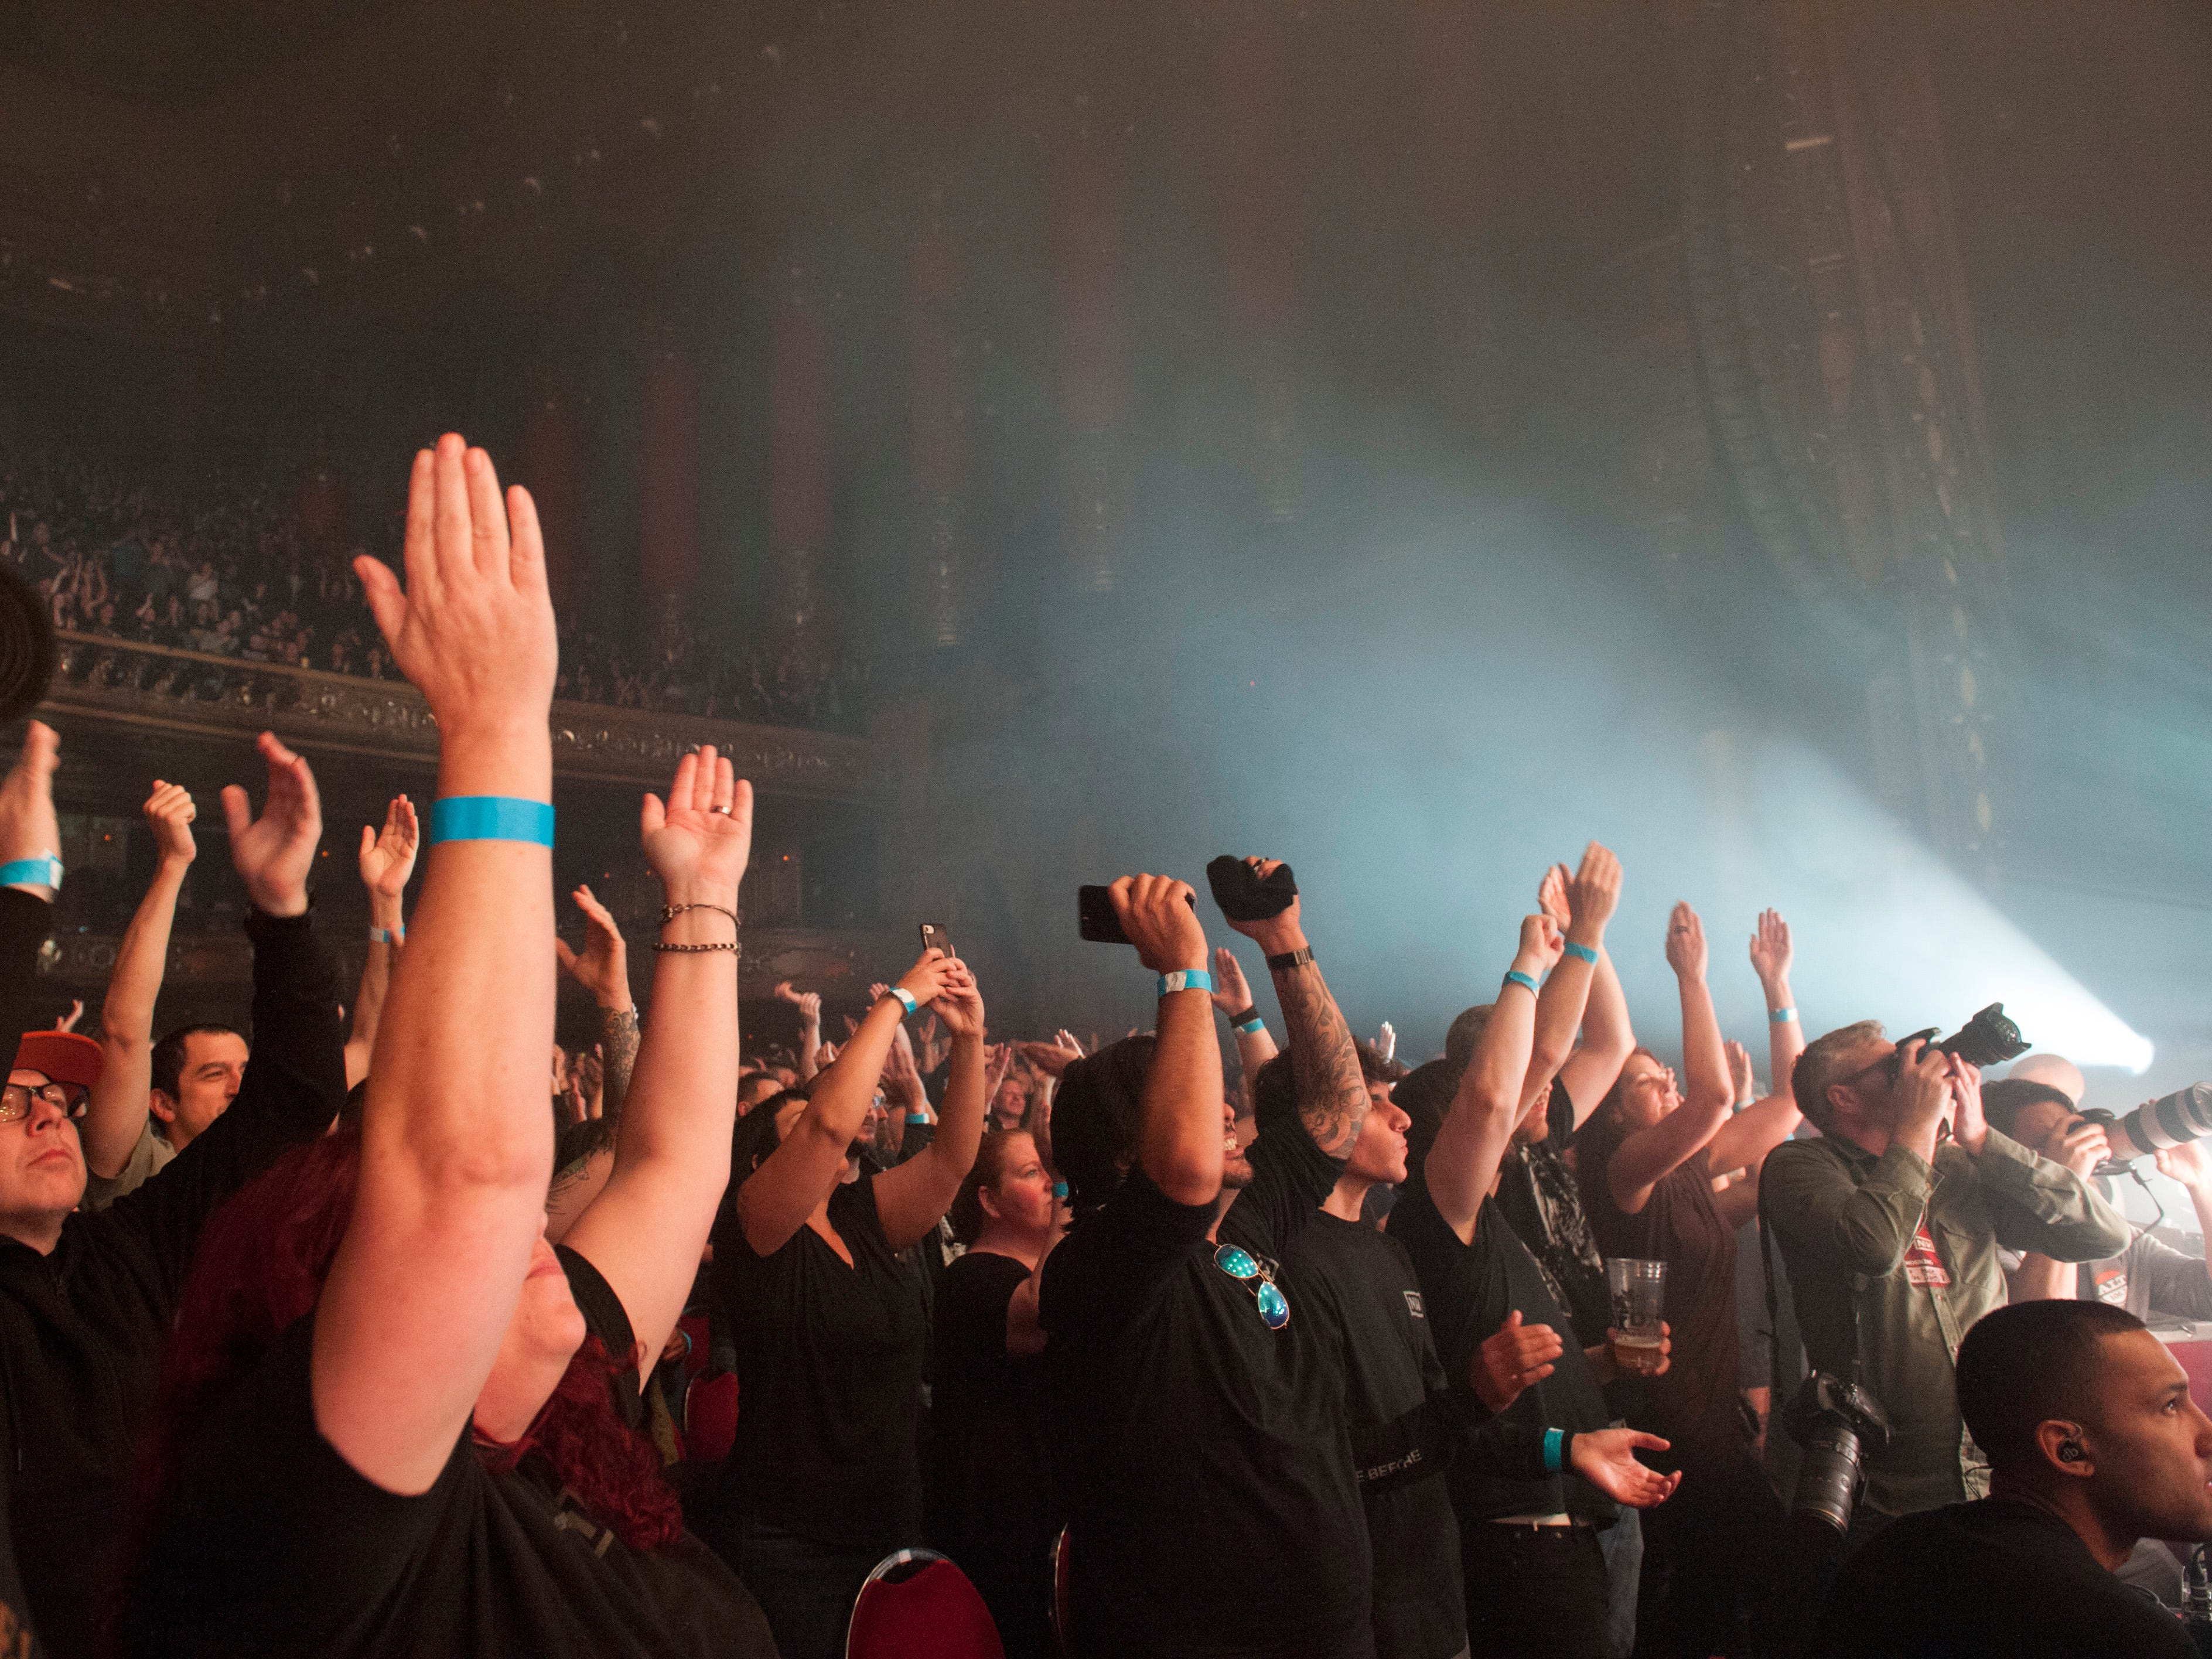 The audience responds during Nine Inch Nails' performance Monday at the Fox Theatre.